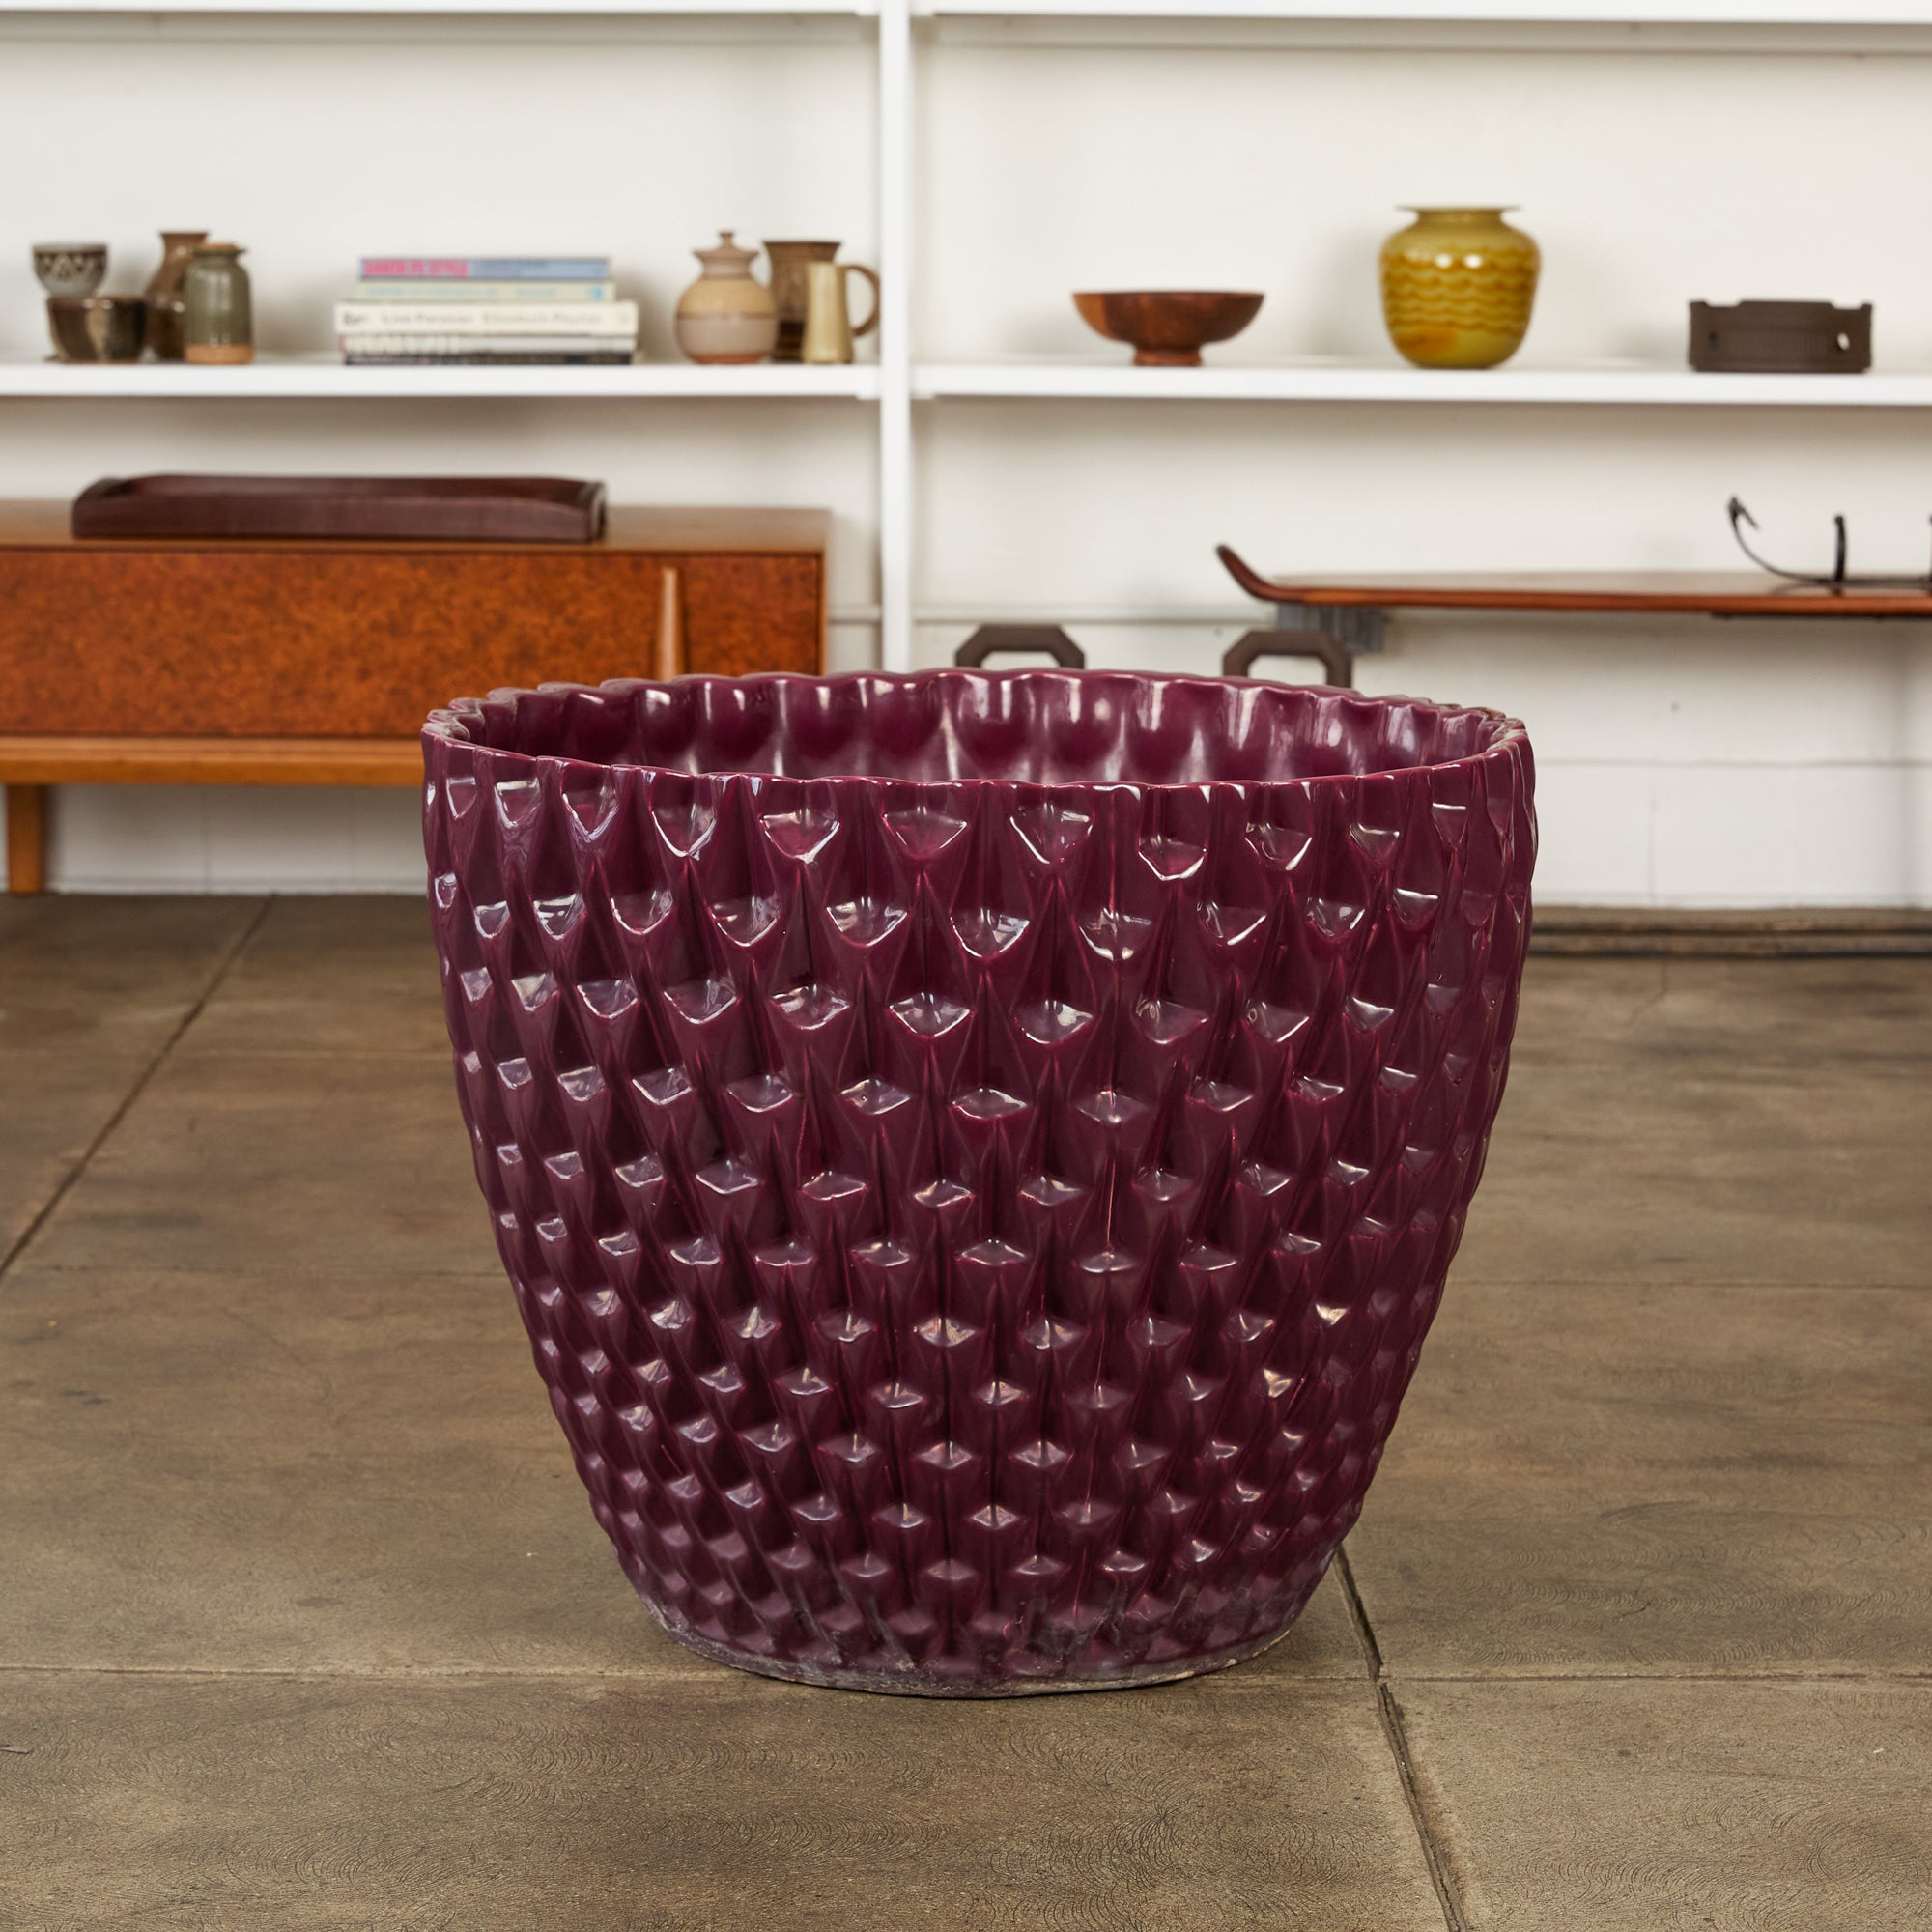 David Cressey Phoenix-1 Planter in Purple Glaze for Architectural Pottery